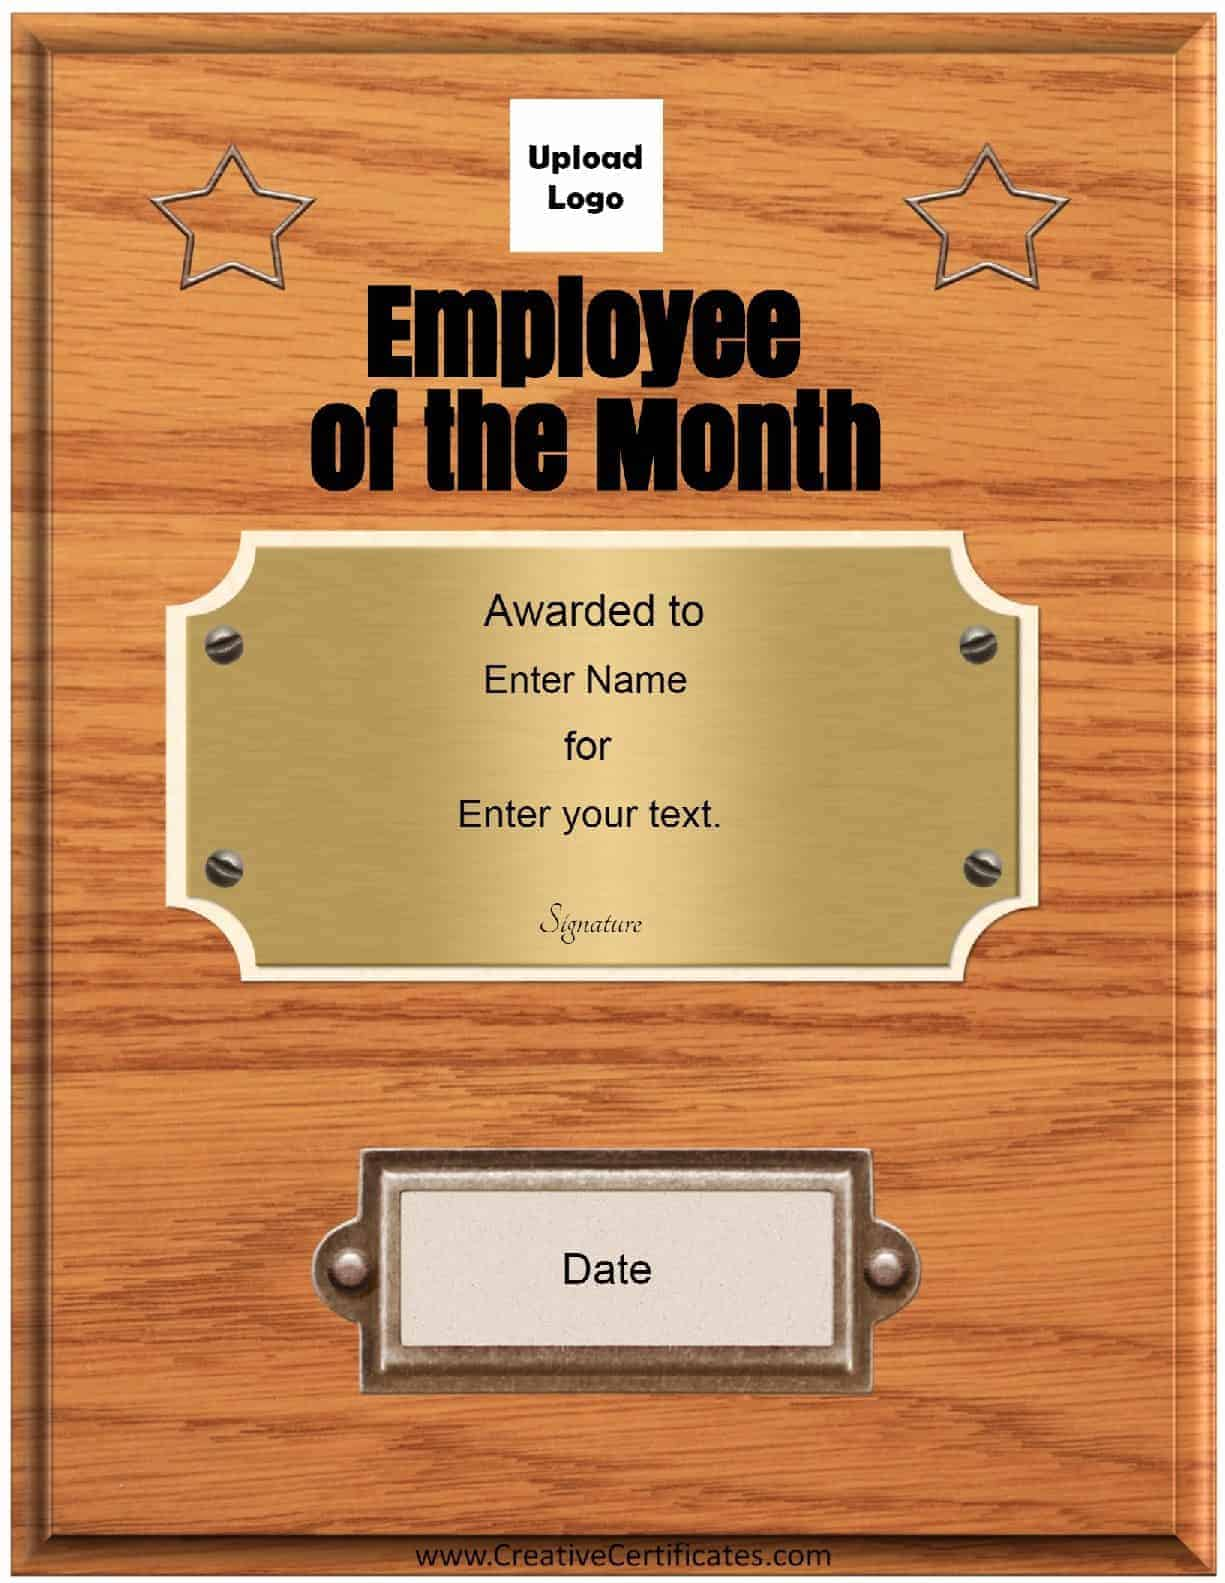 Free Custom Employee of the Month Certificate – Employee of the Month Certificate Template Free